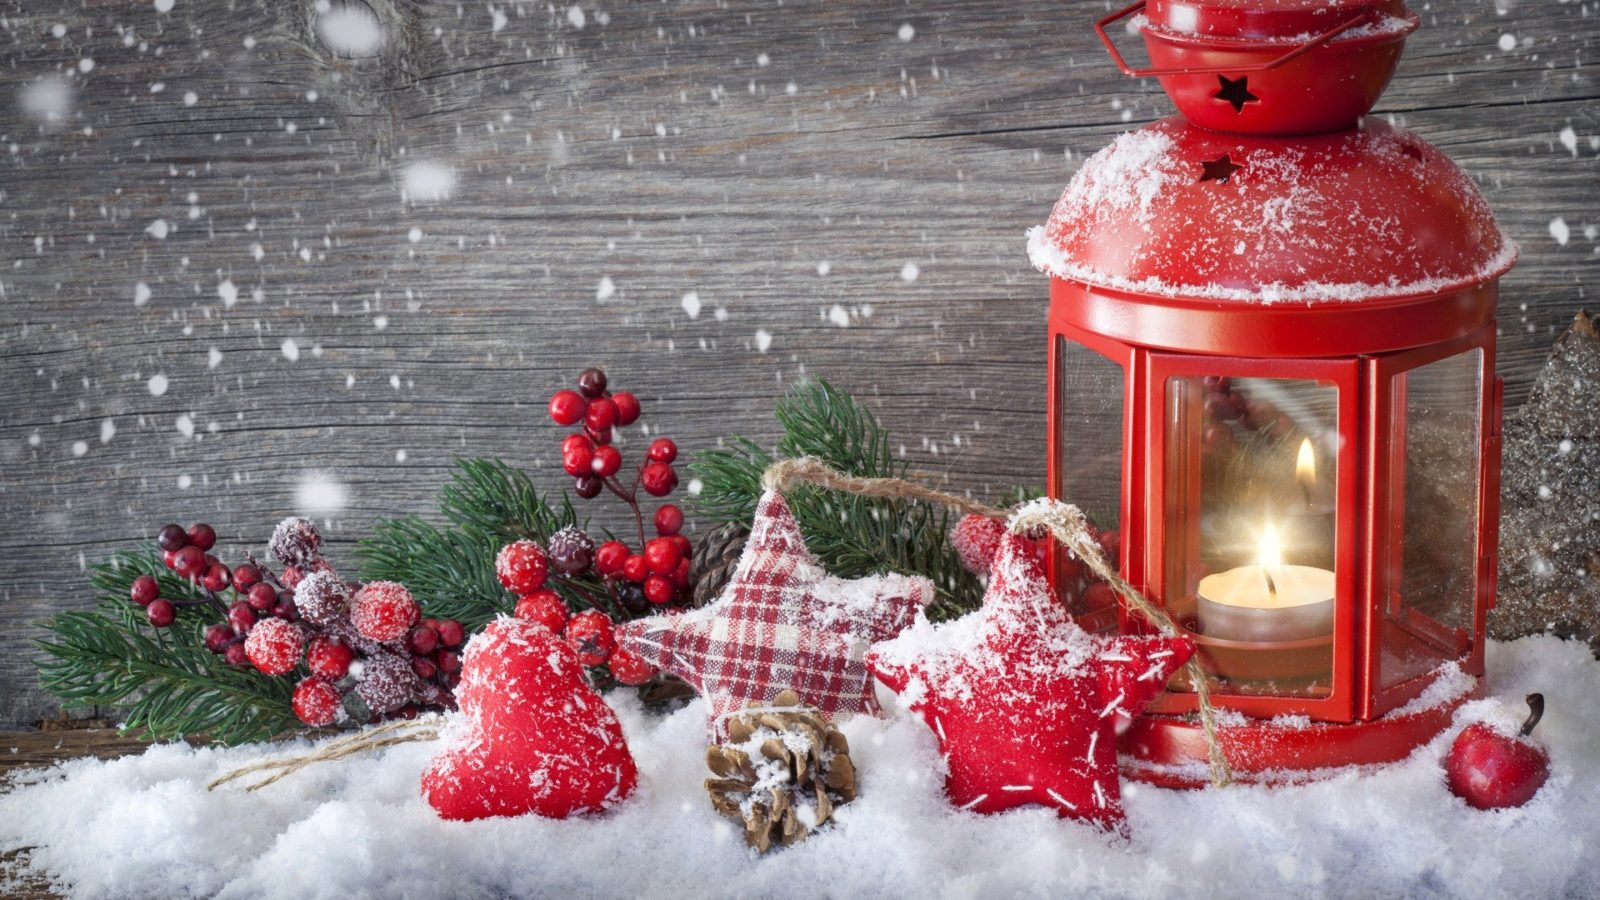 Christmas Desktop Background Hd